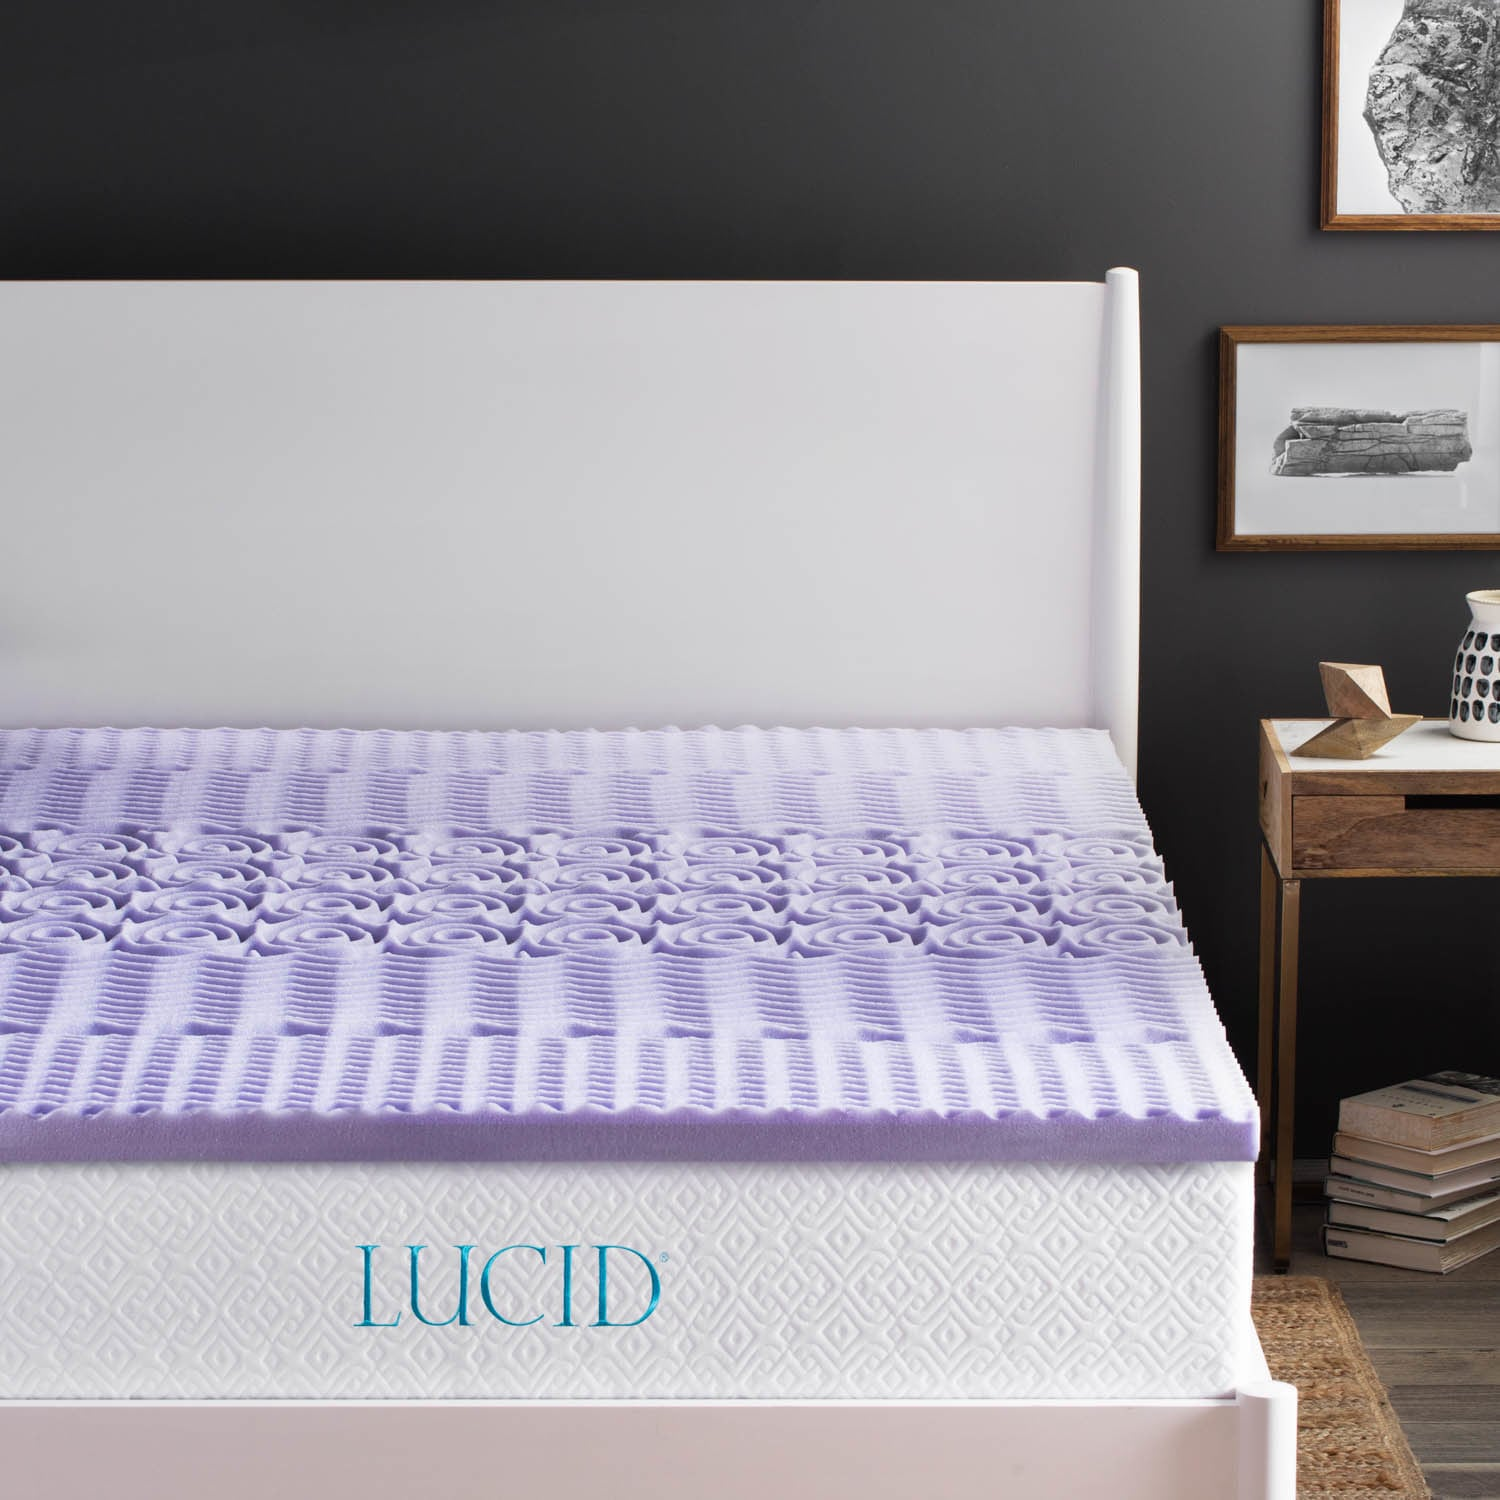 LUCID 2 inch Zoned Lavender Infused Memory Foam Mattress Topper